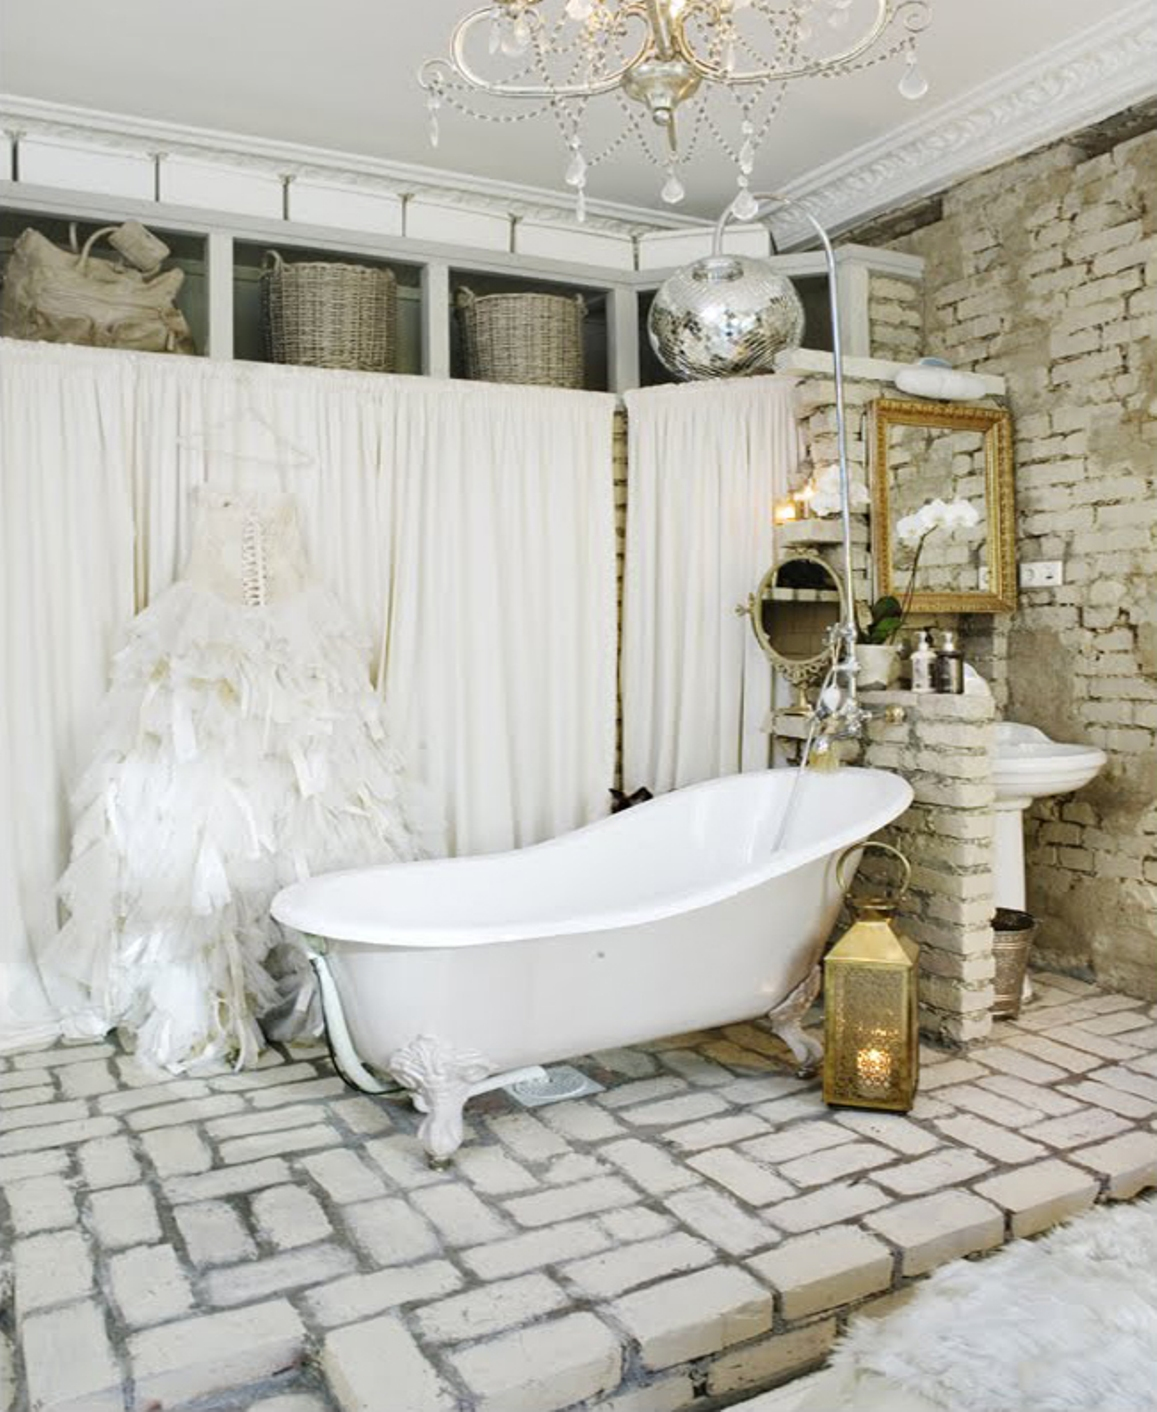 Bathroom Ideas: 30 Great Pictures And Ideas Of Old Fashioned Bathroom Tile